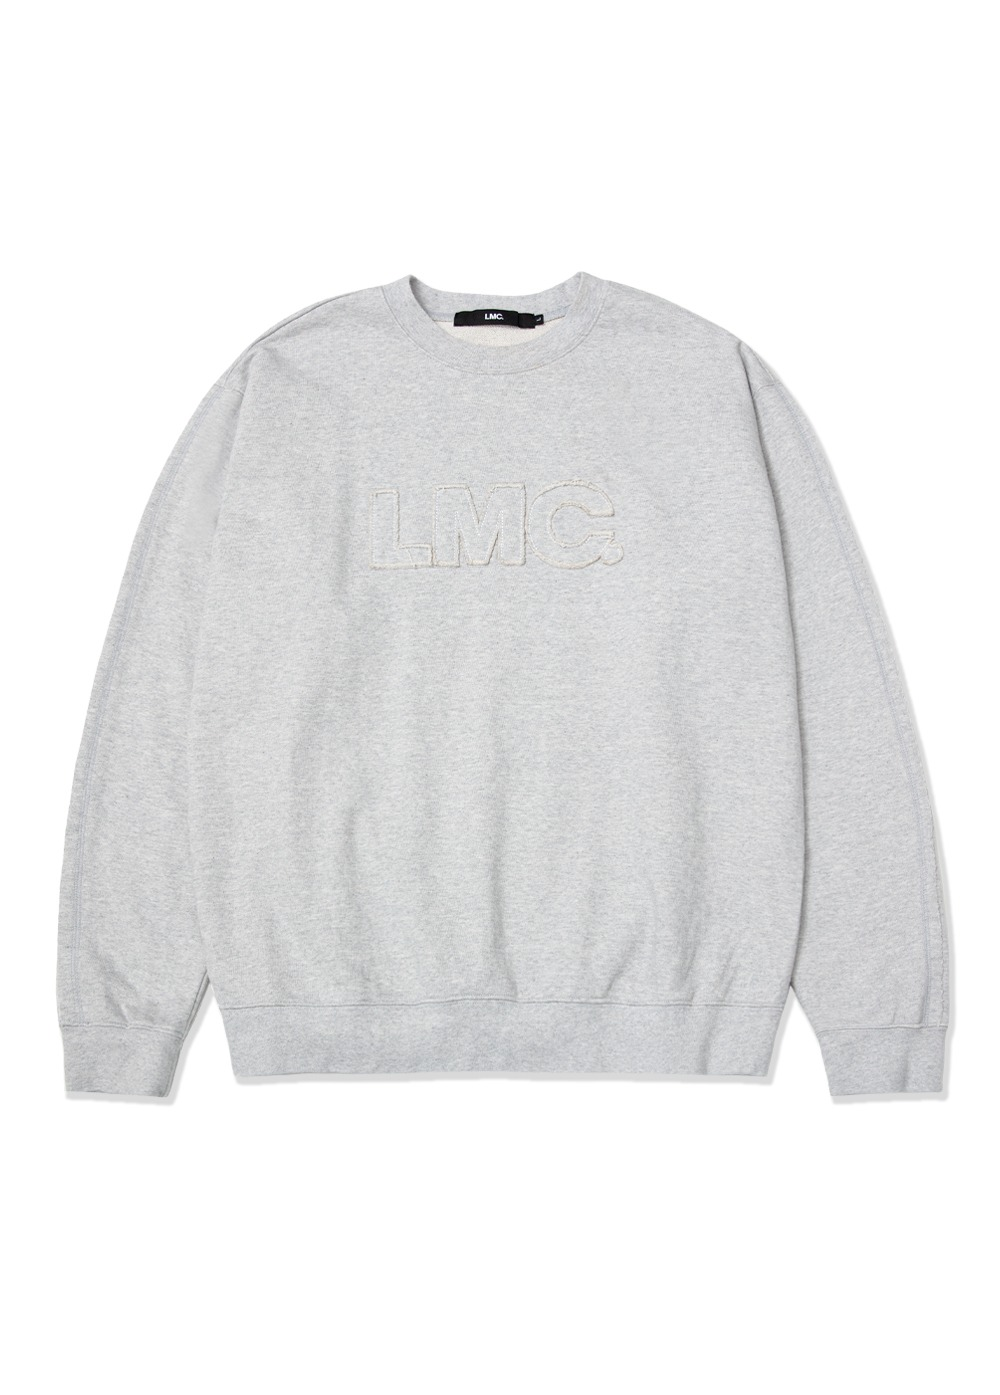 LMC OG APPLIQUE SWEATSHIRT heather gray